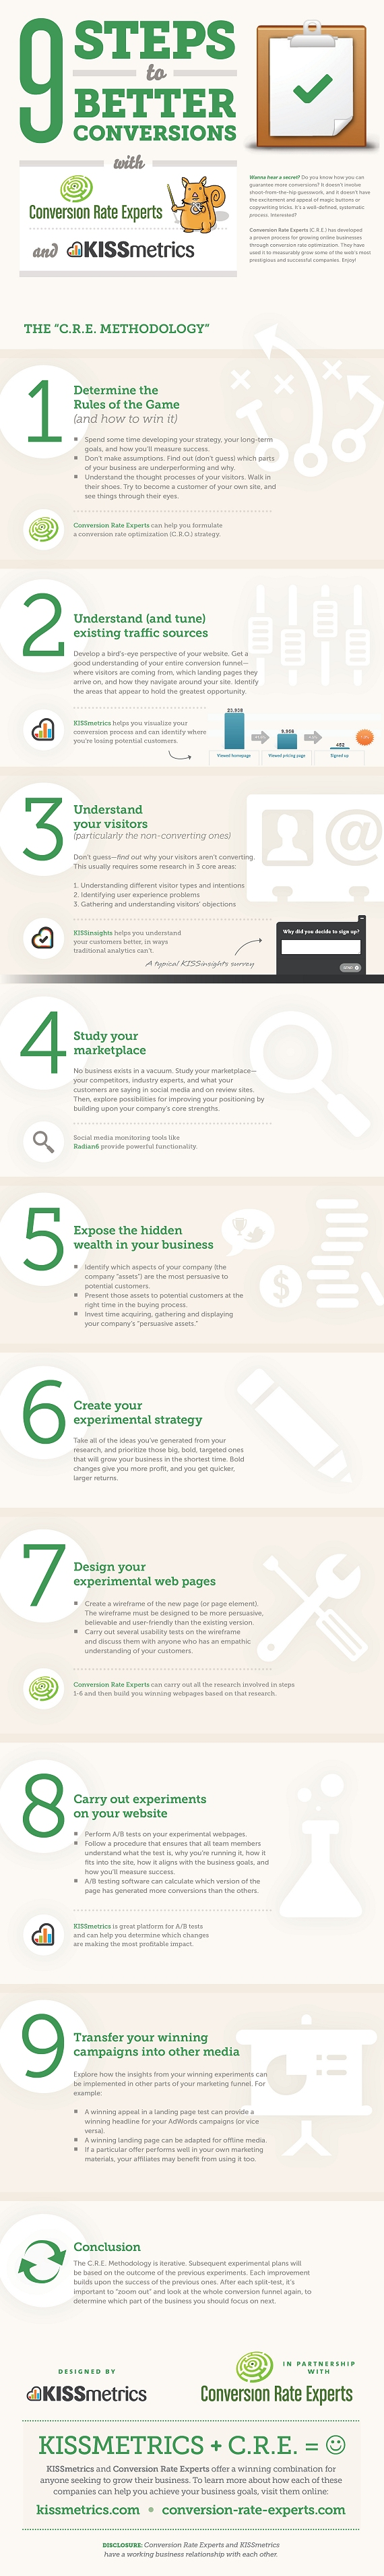 9 Steps to Better Conversions – The C.R.E. Methodology